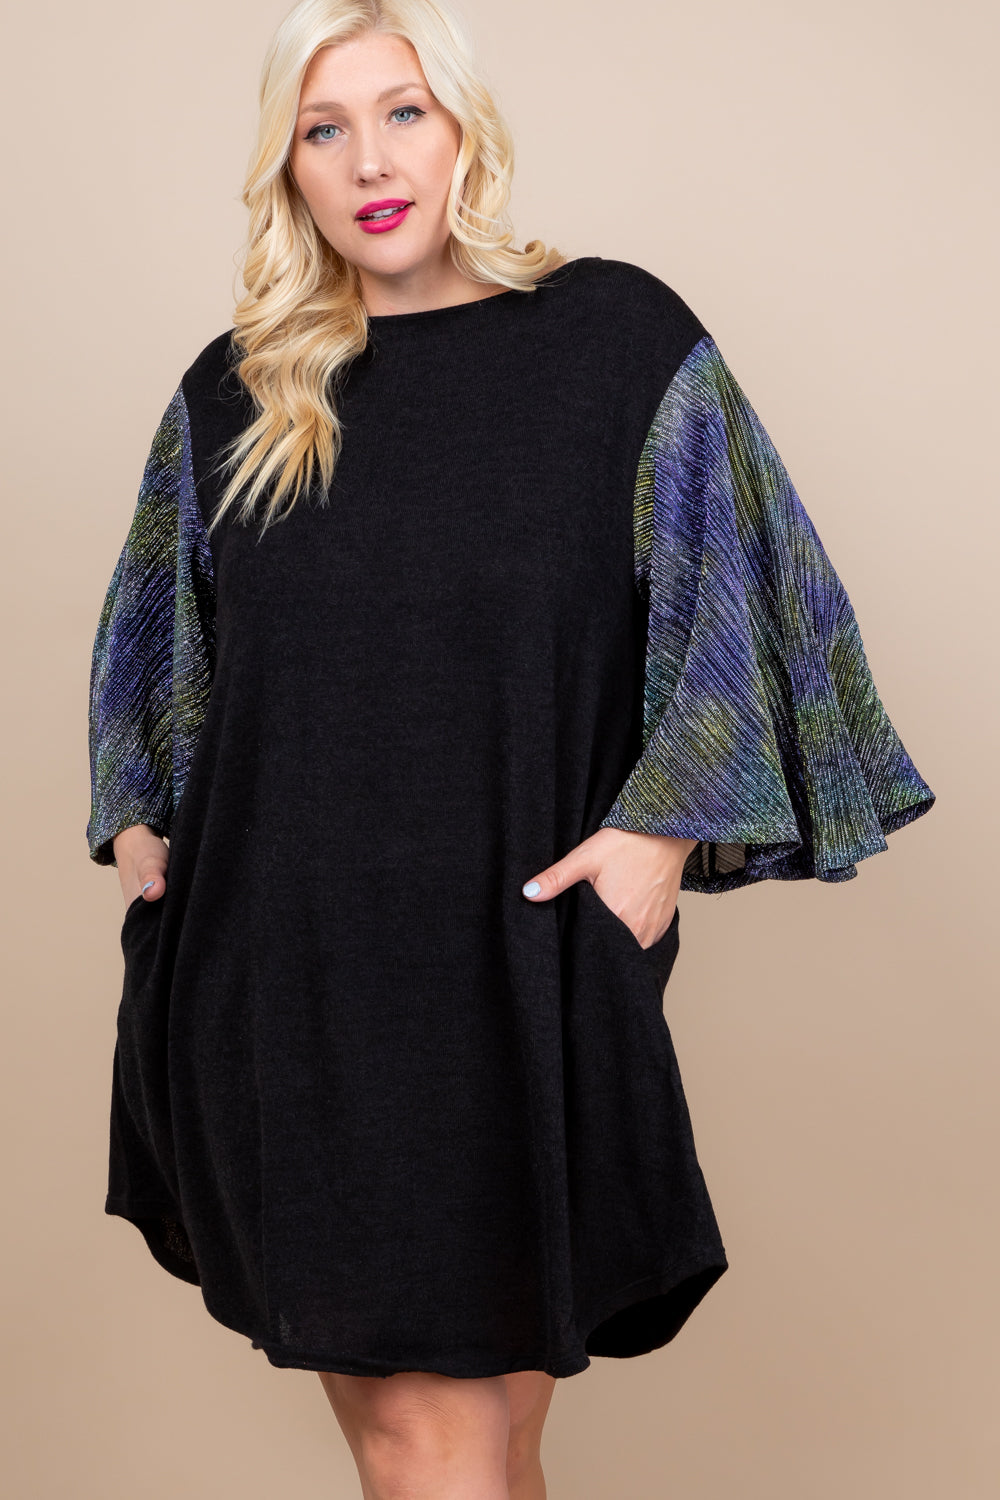 Felix Solid Knit Fashion Dress - Black - Curvy Clothes Australia - Afterpay Laybuy & Humm Online